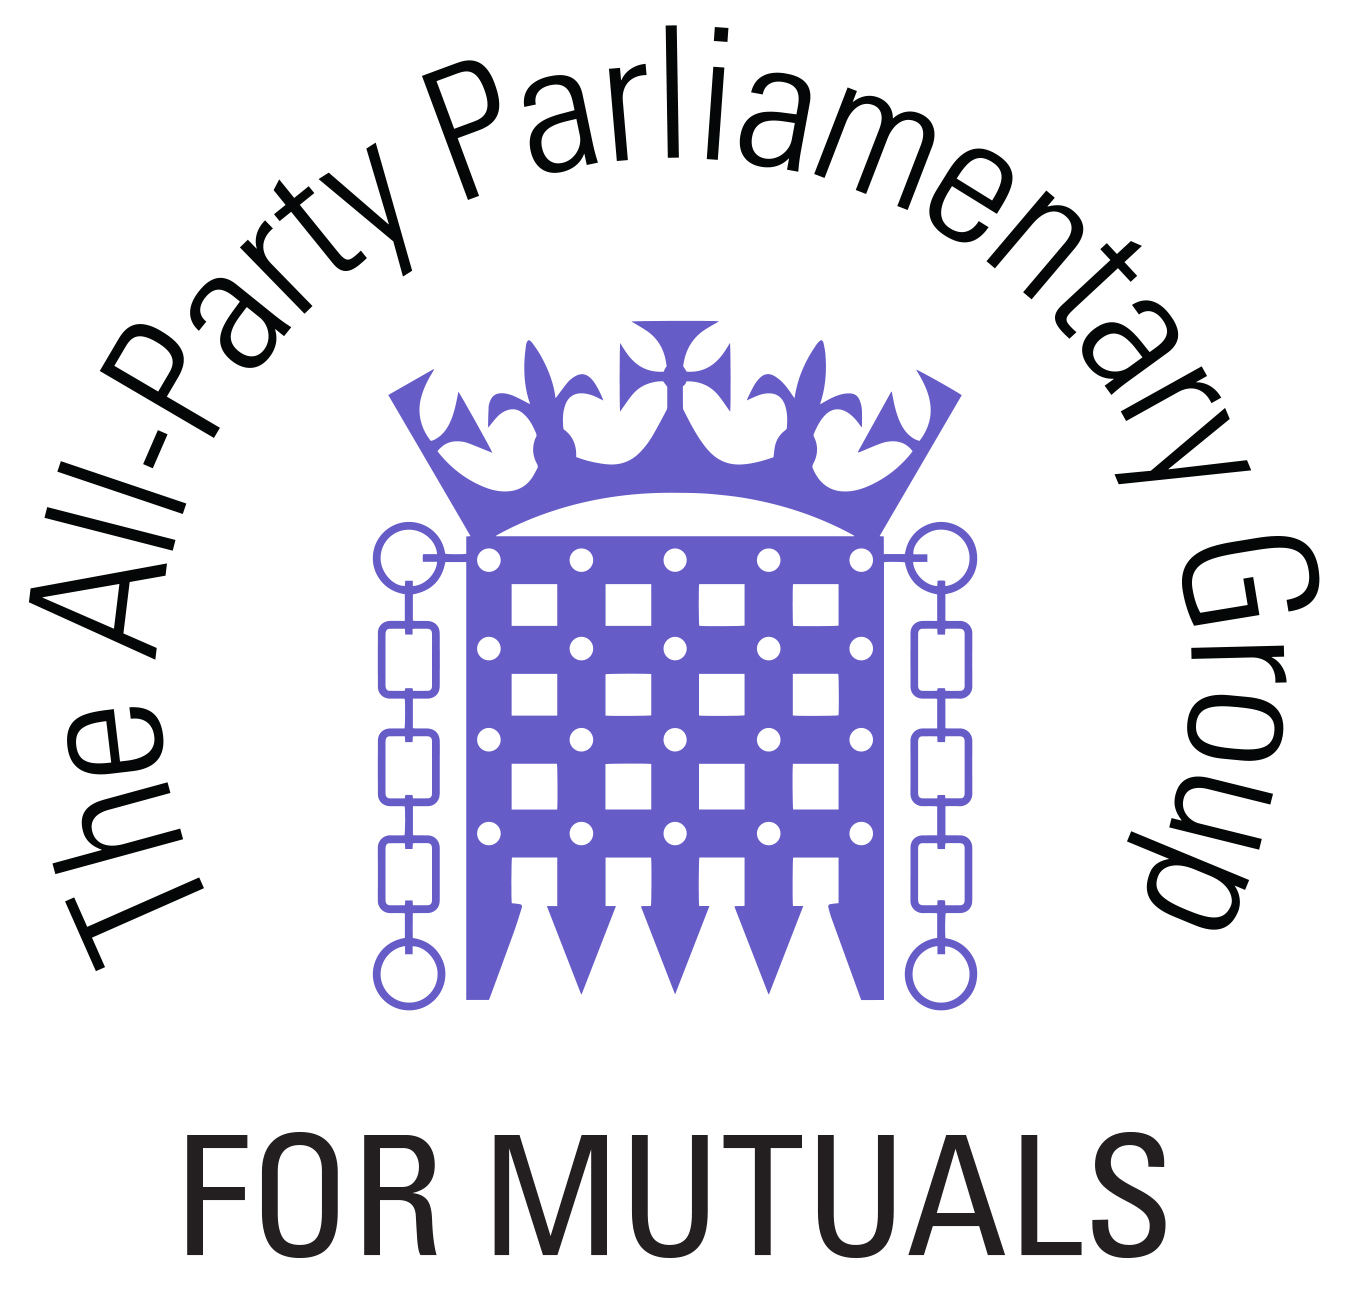 Parliamentary group mutuals